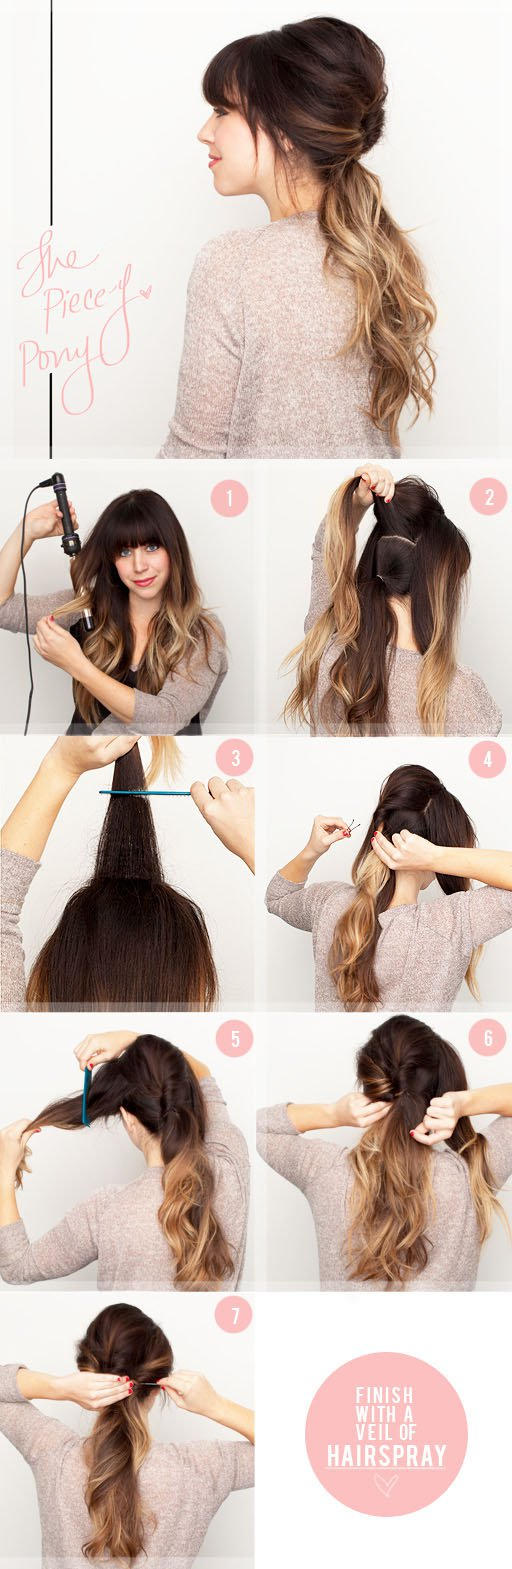 Twisted Ponytail Hairstyle Tutorial